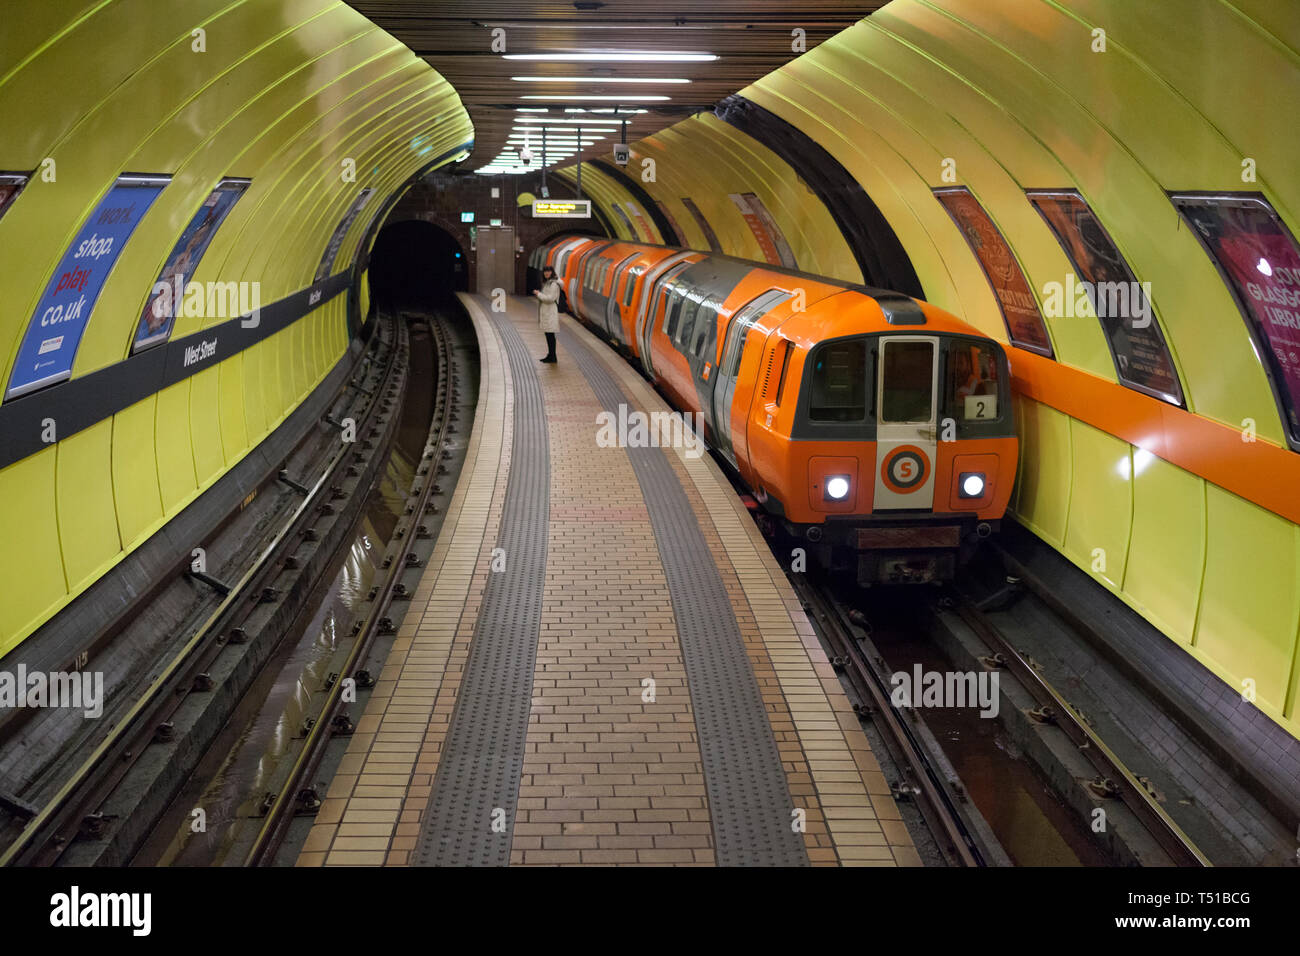 A outer circle train arrives at West Street subway station on the SPT Glasgow subway - Stock Image